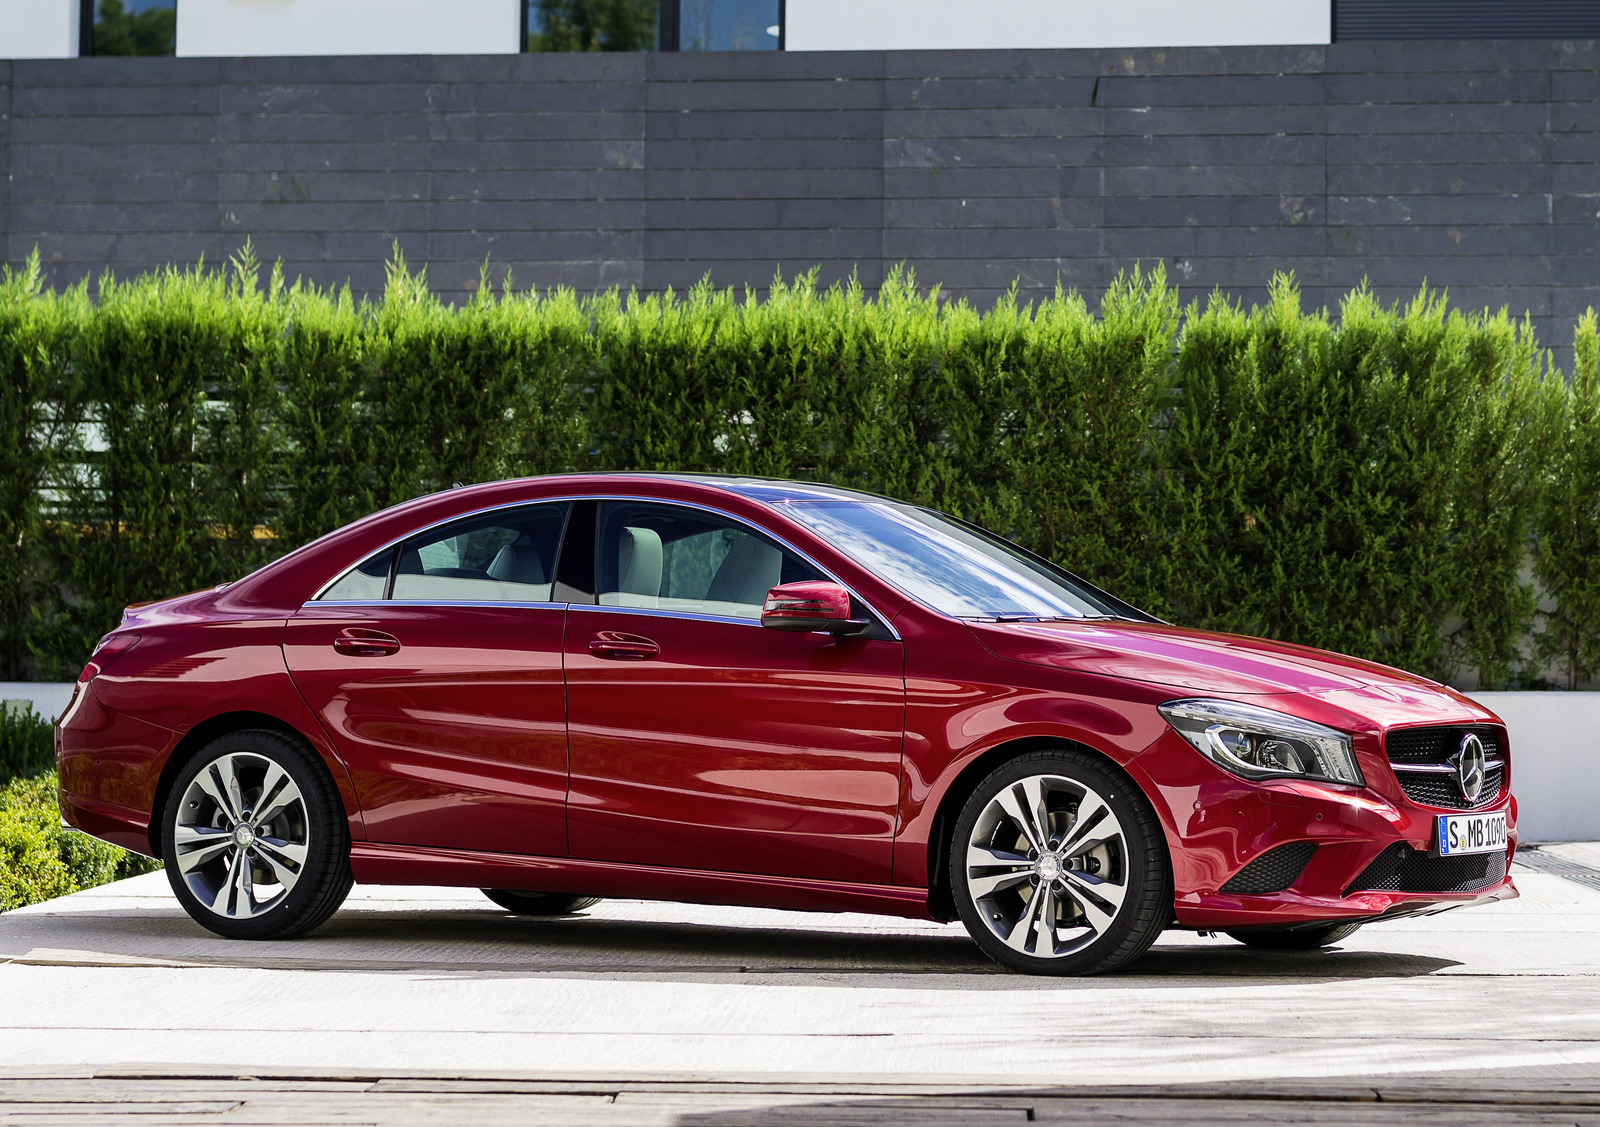 2014 mercedes benz cla class test drive review cargurus for 2014 mercedes benz a class